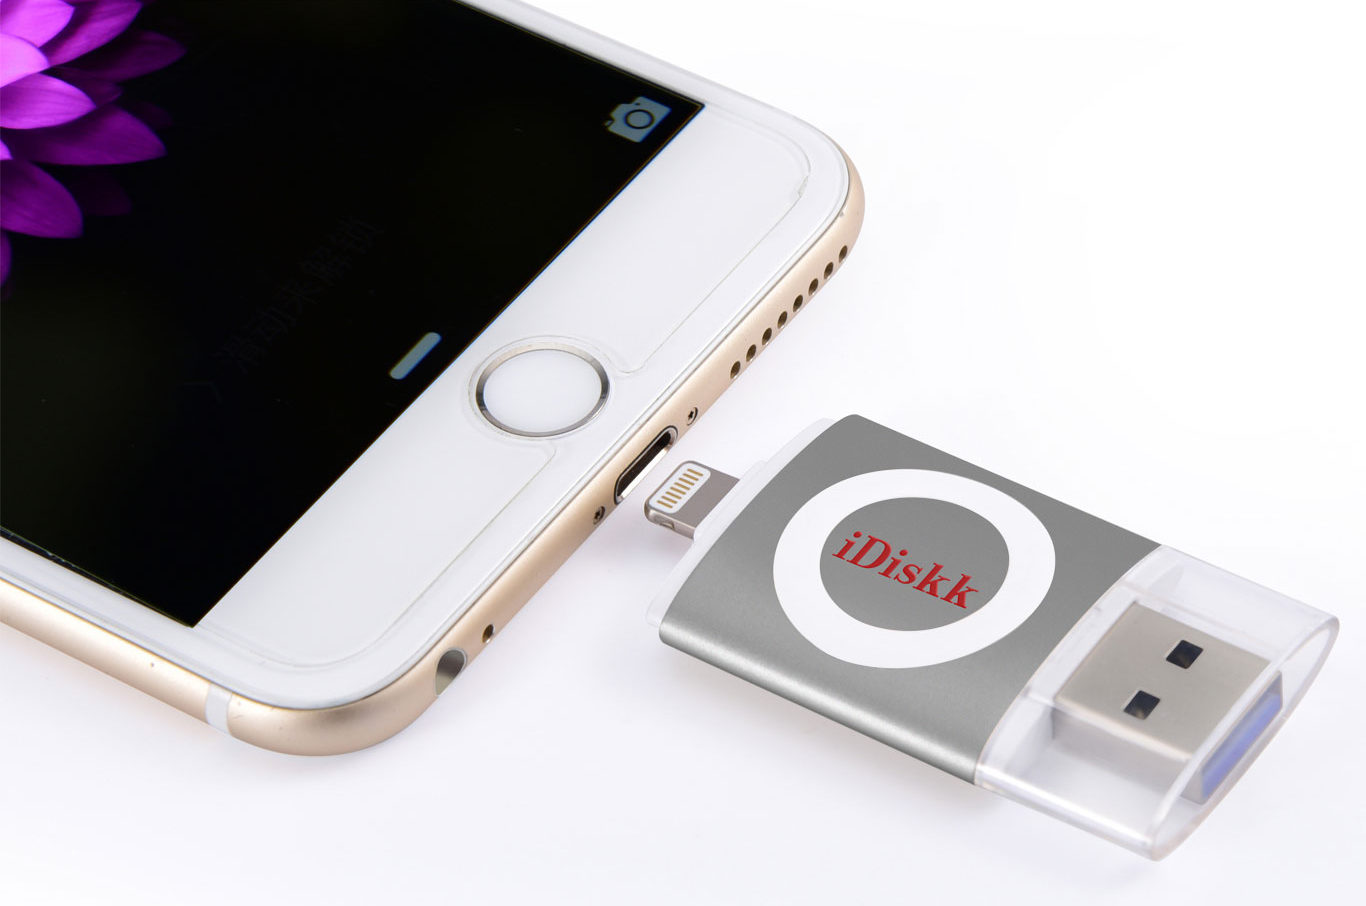 Cle Usb Iphone  Go